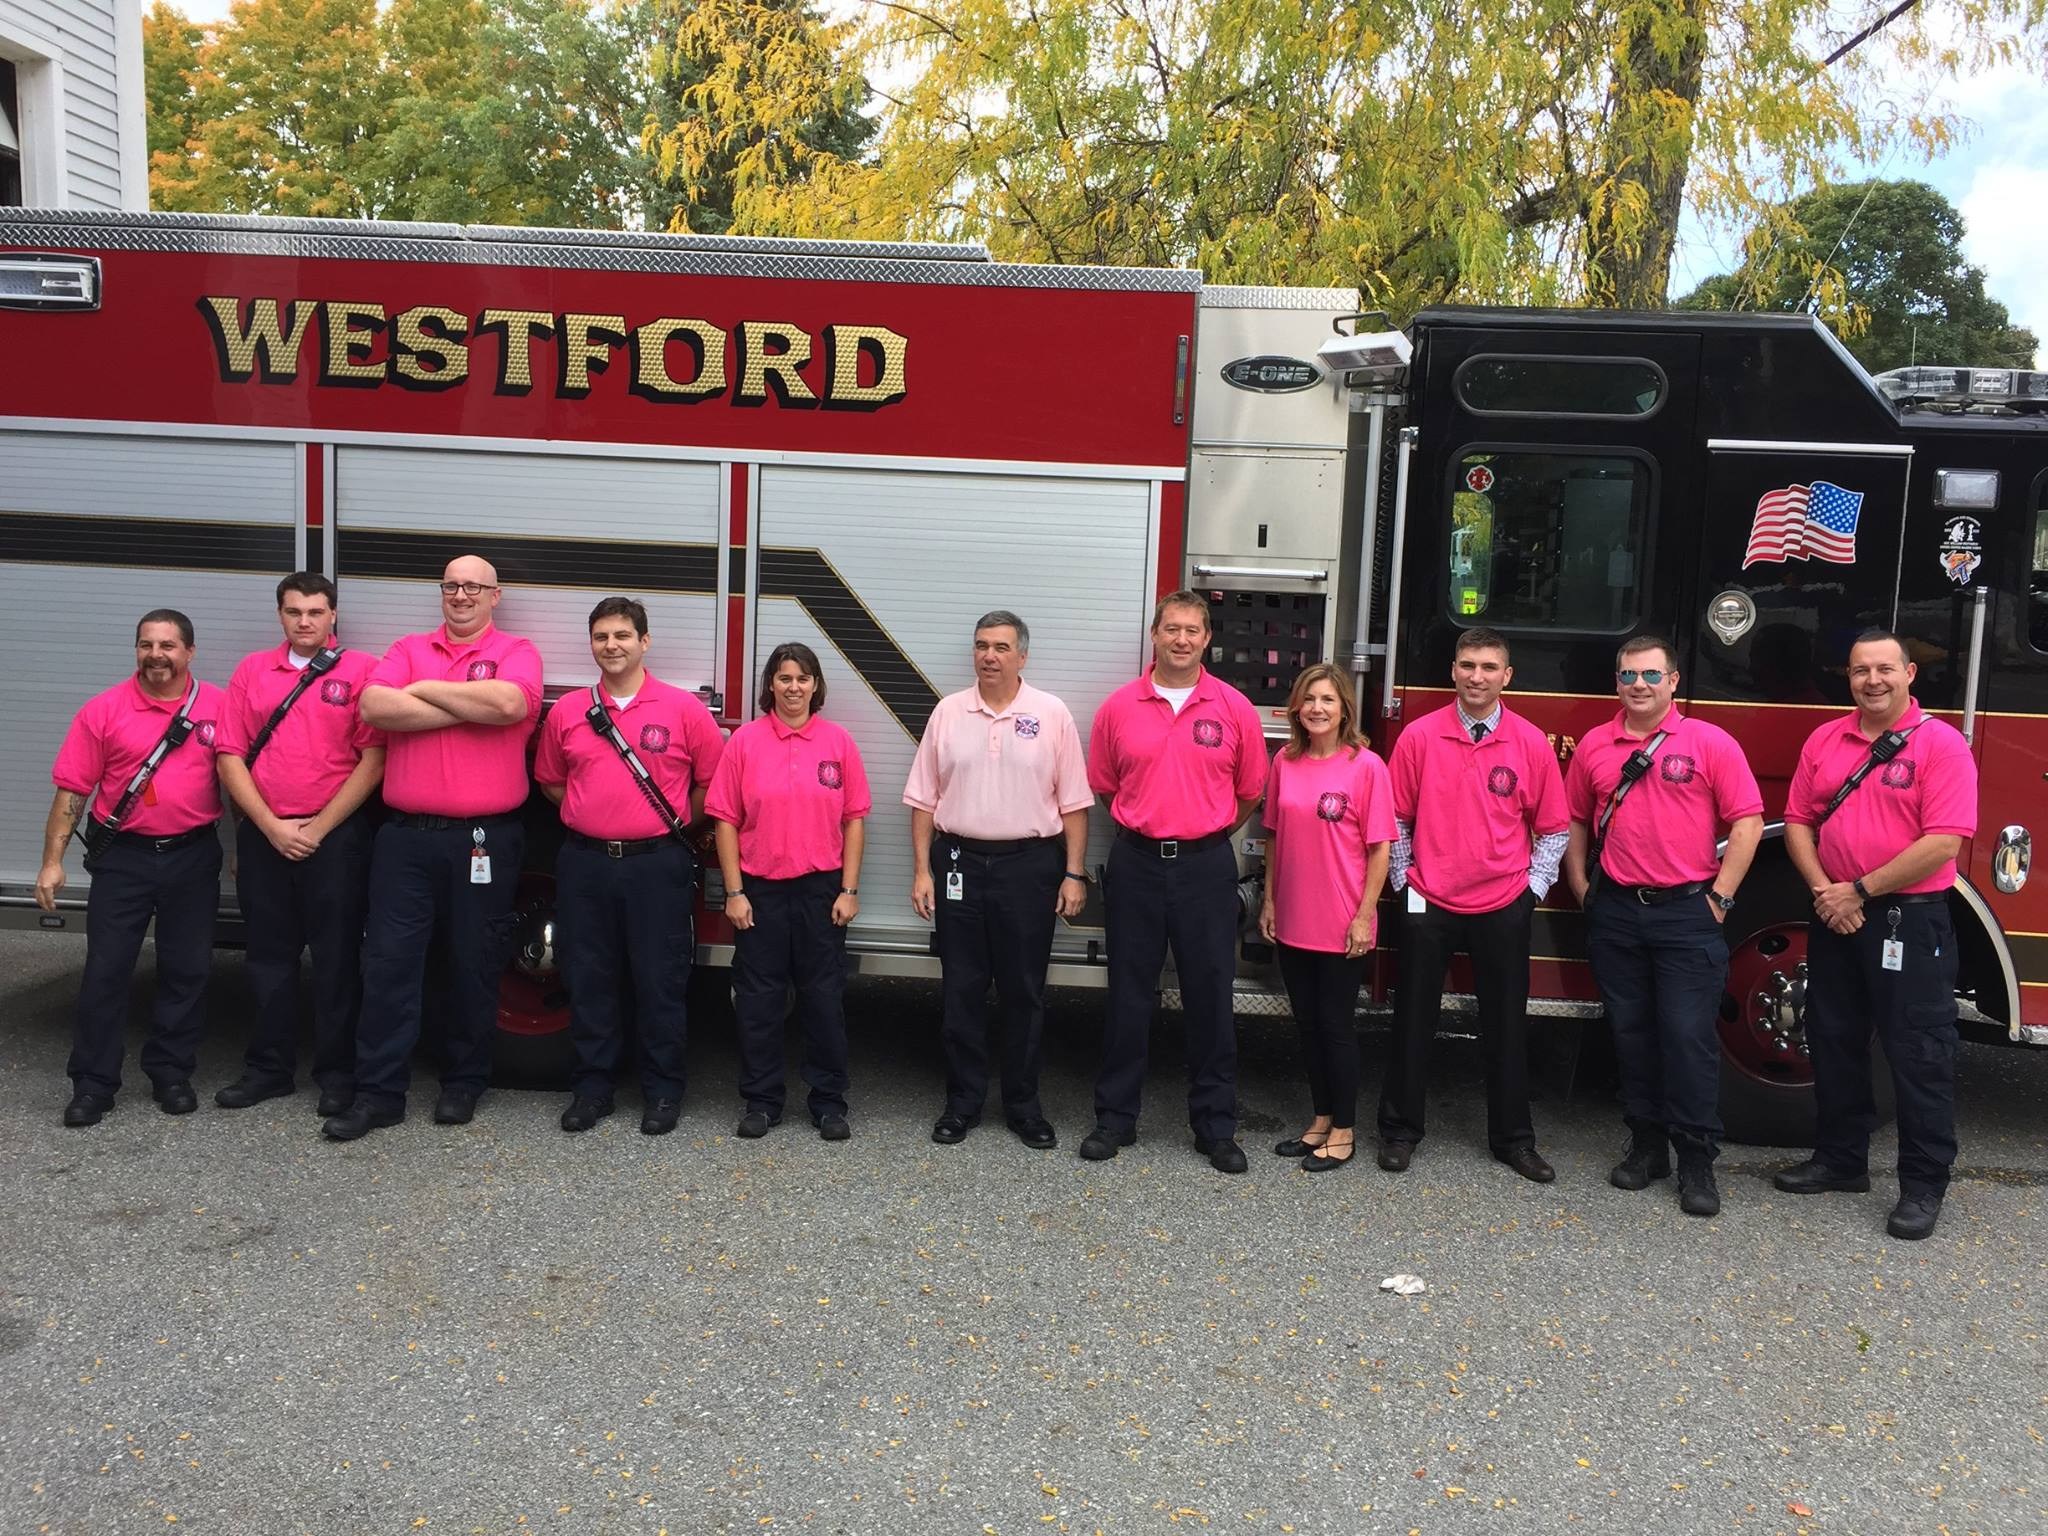 Westford Fire Department